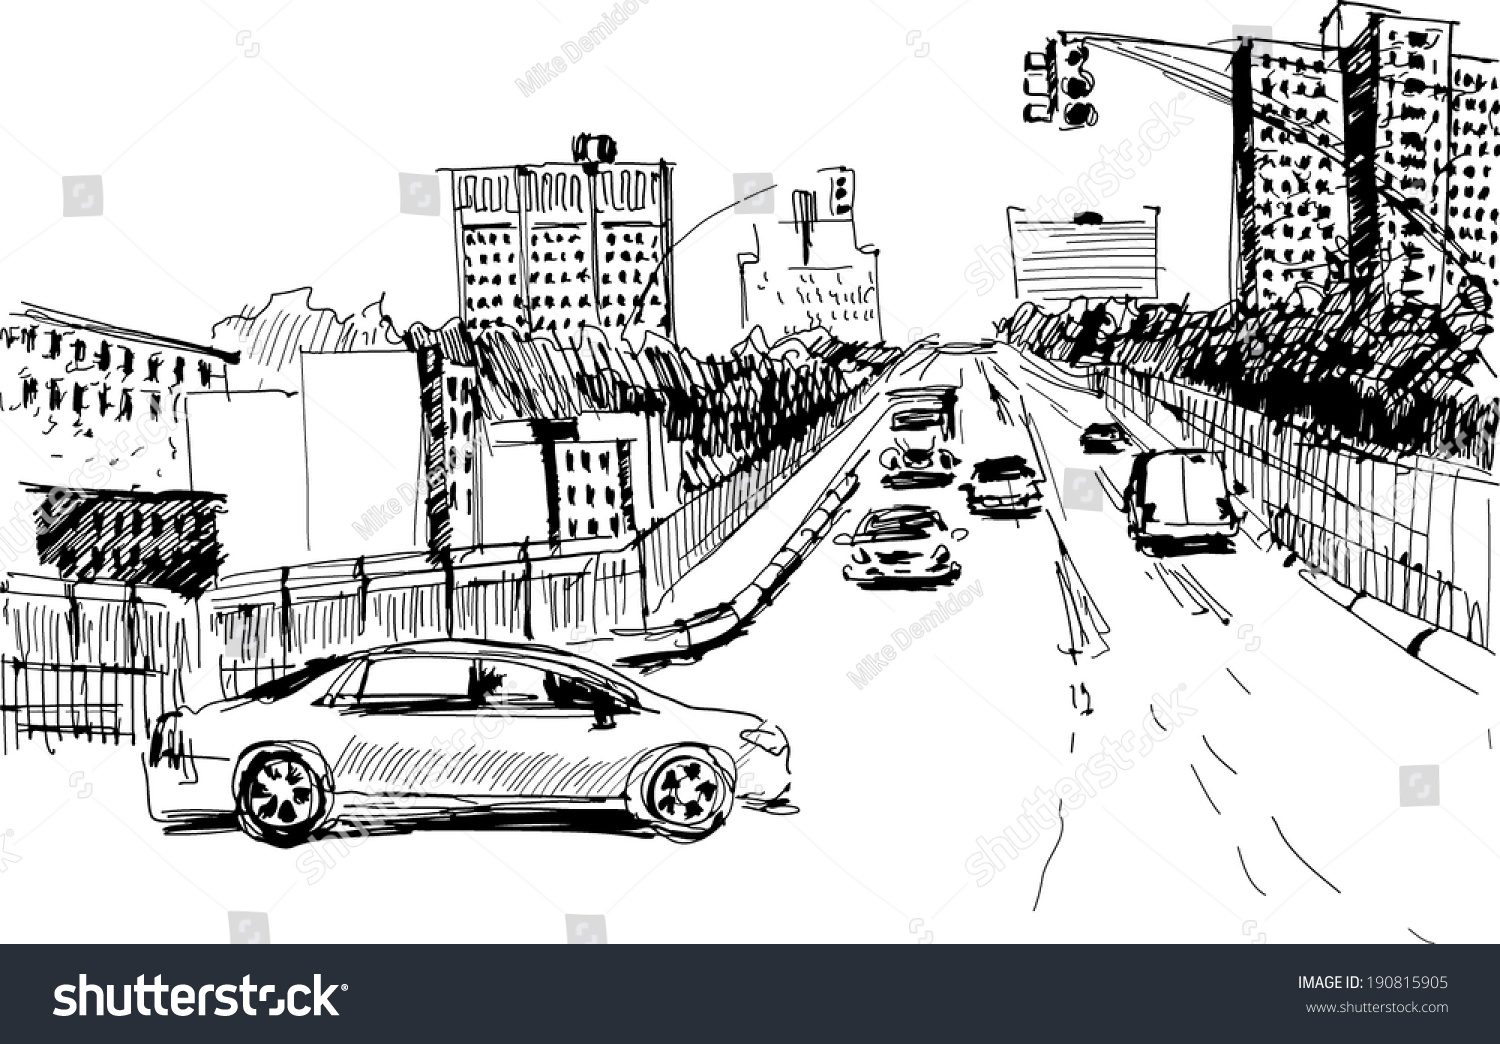 Hand Drawing Outline Perspective Road Big Stock Photo (Photo, Vector ...